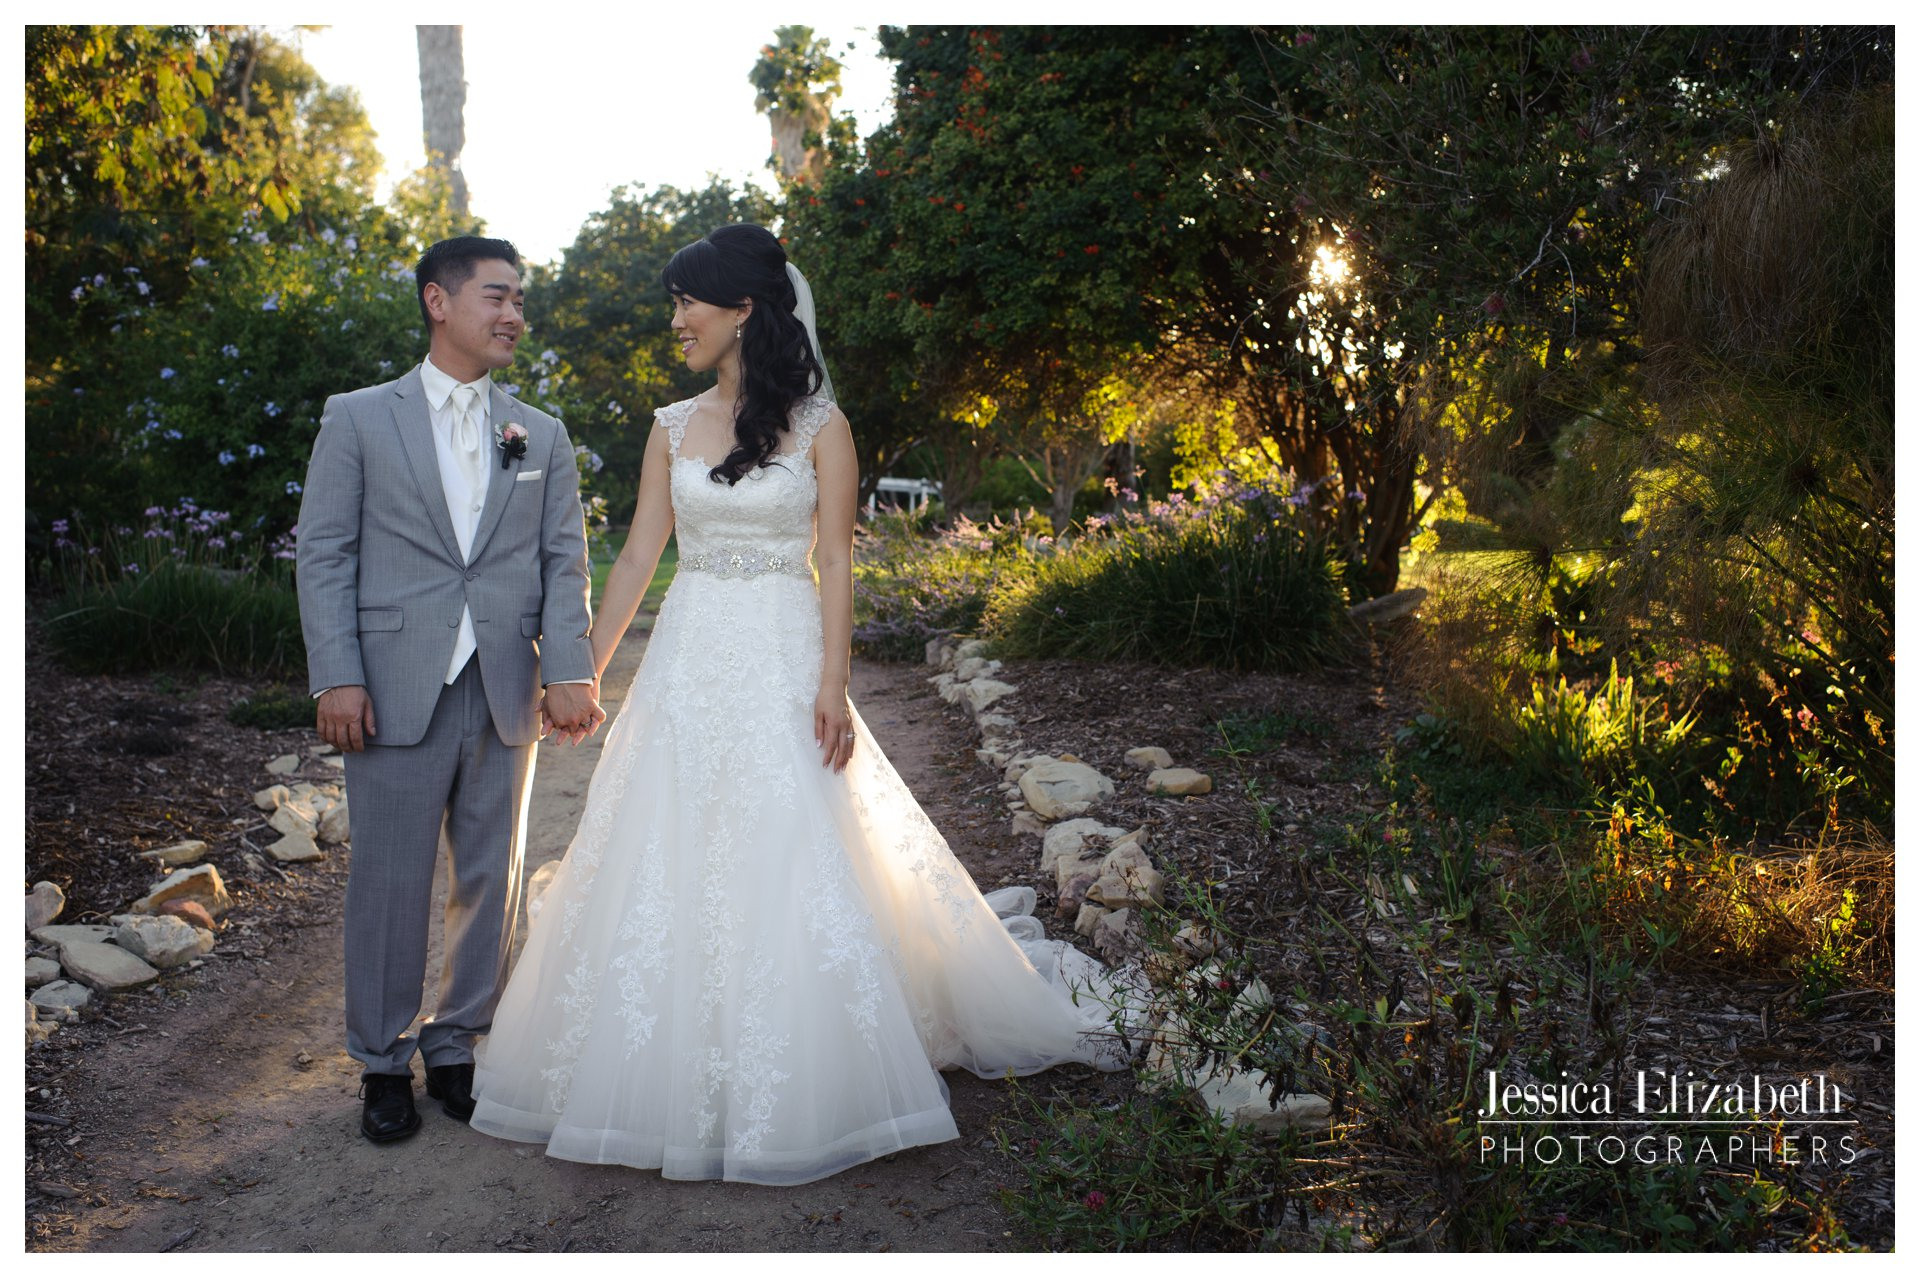 31-South Coast Botanic Garden Palos Verdes Wedding Photography by Jessica Elizabeth